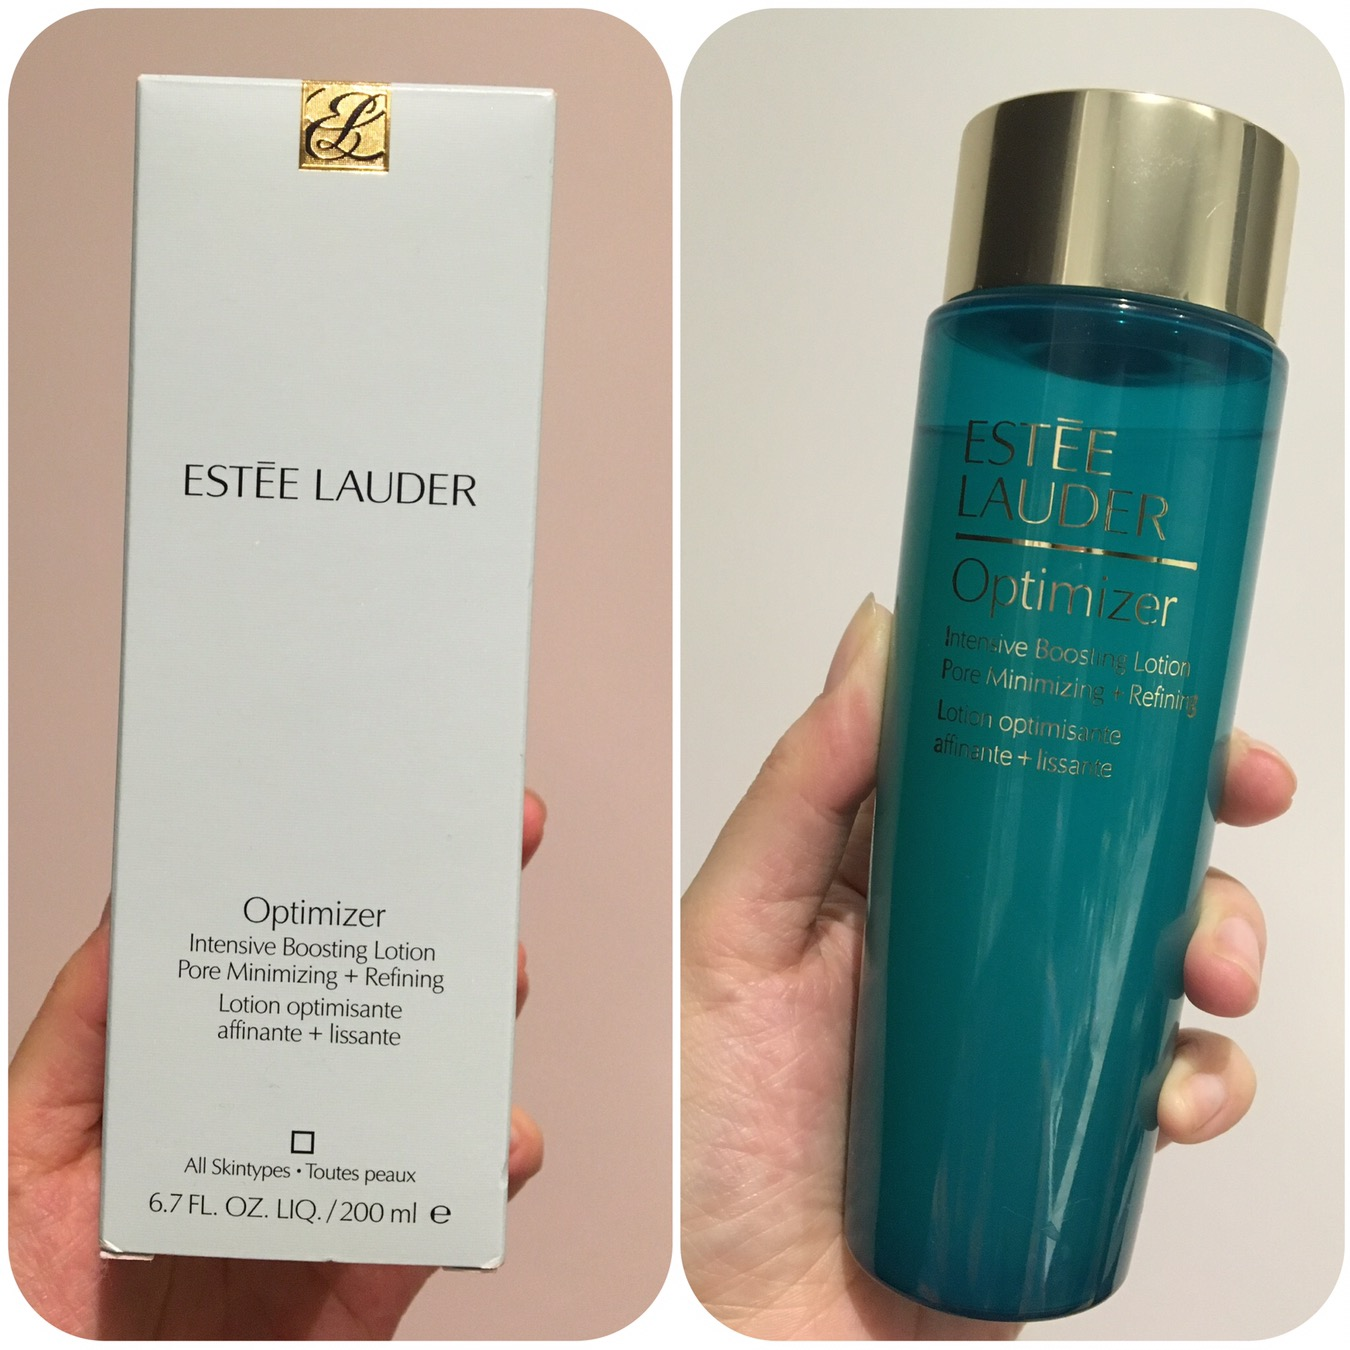 Estee Lauder Optimizer Intensive Boosting Lotion Pore Minimizing